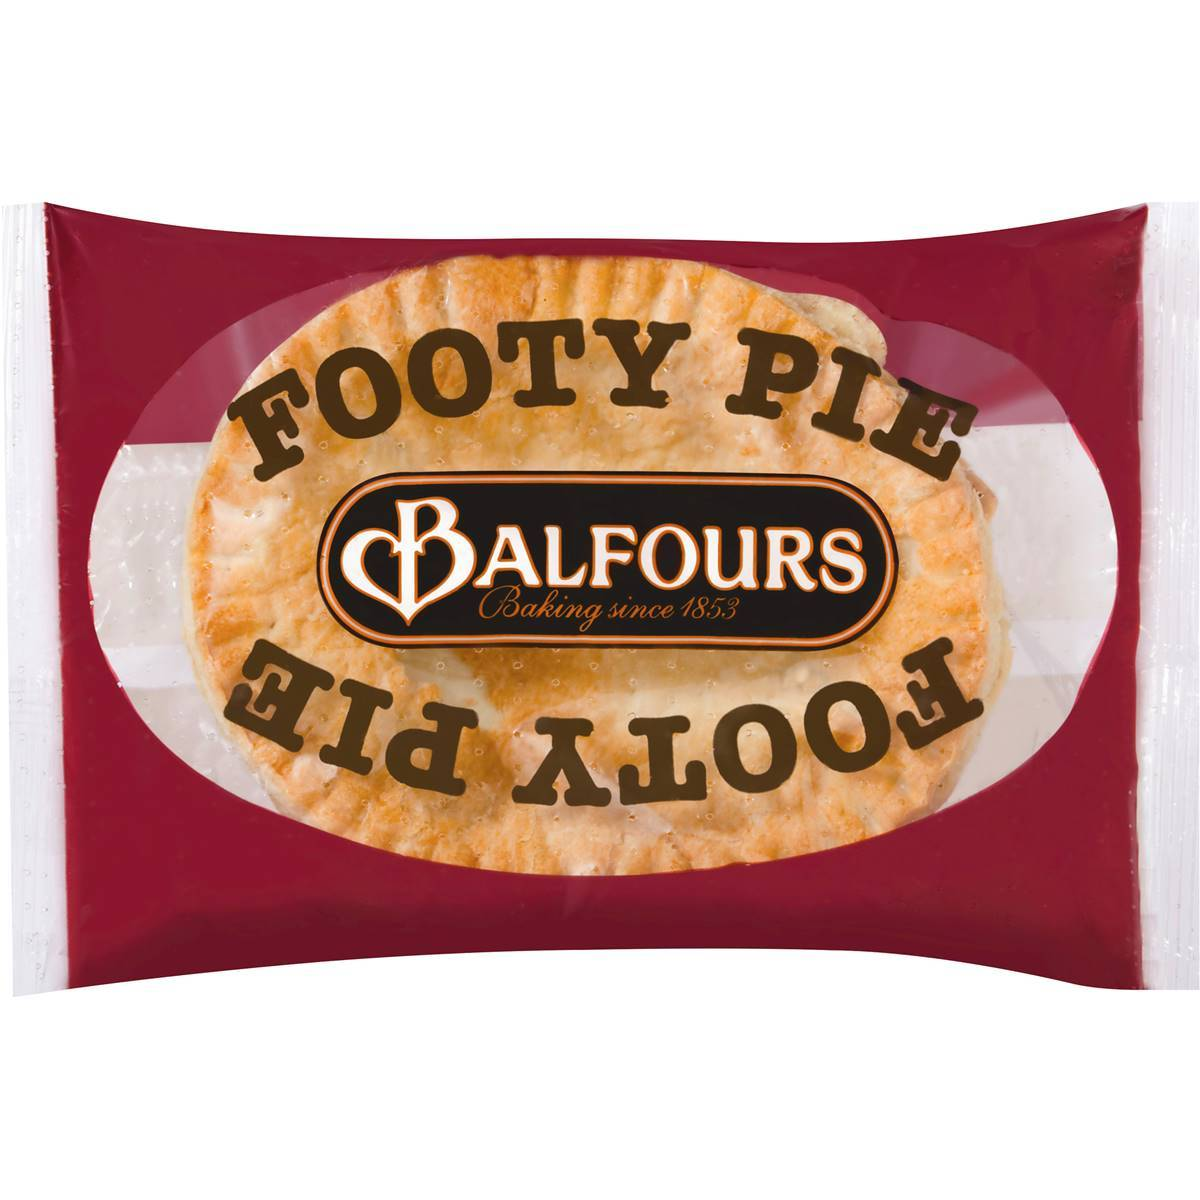 Footy fan takes bite into pie to discover the meat is missing